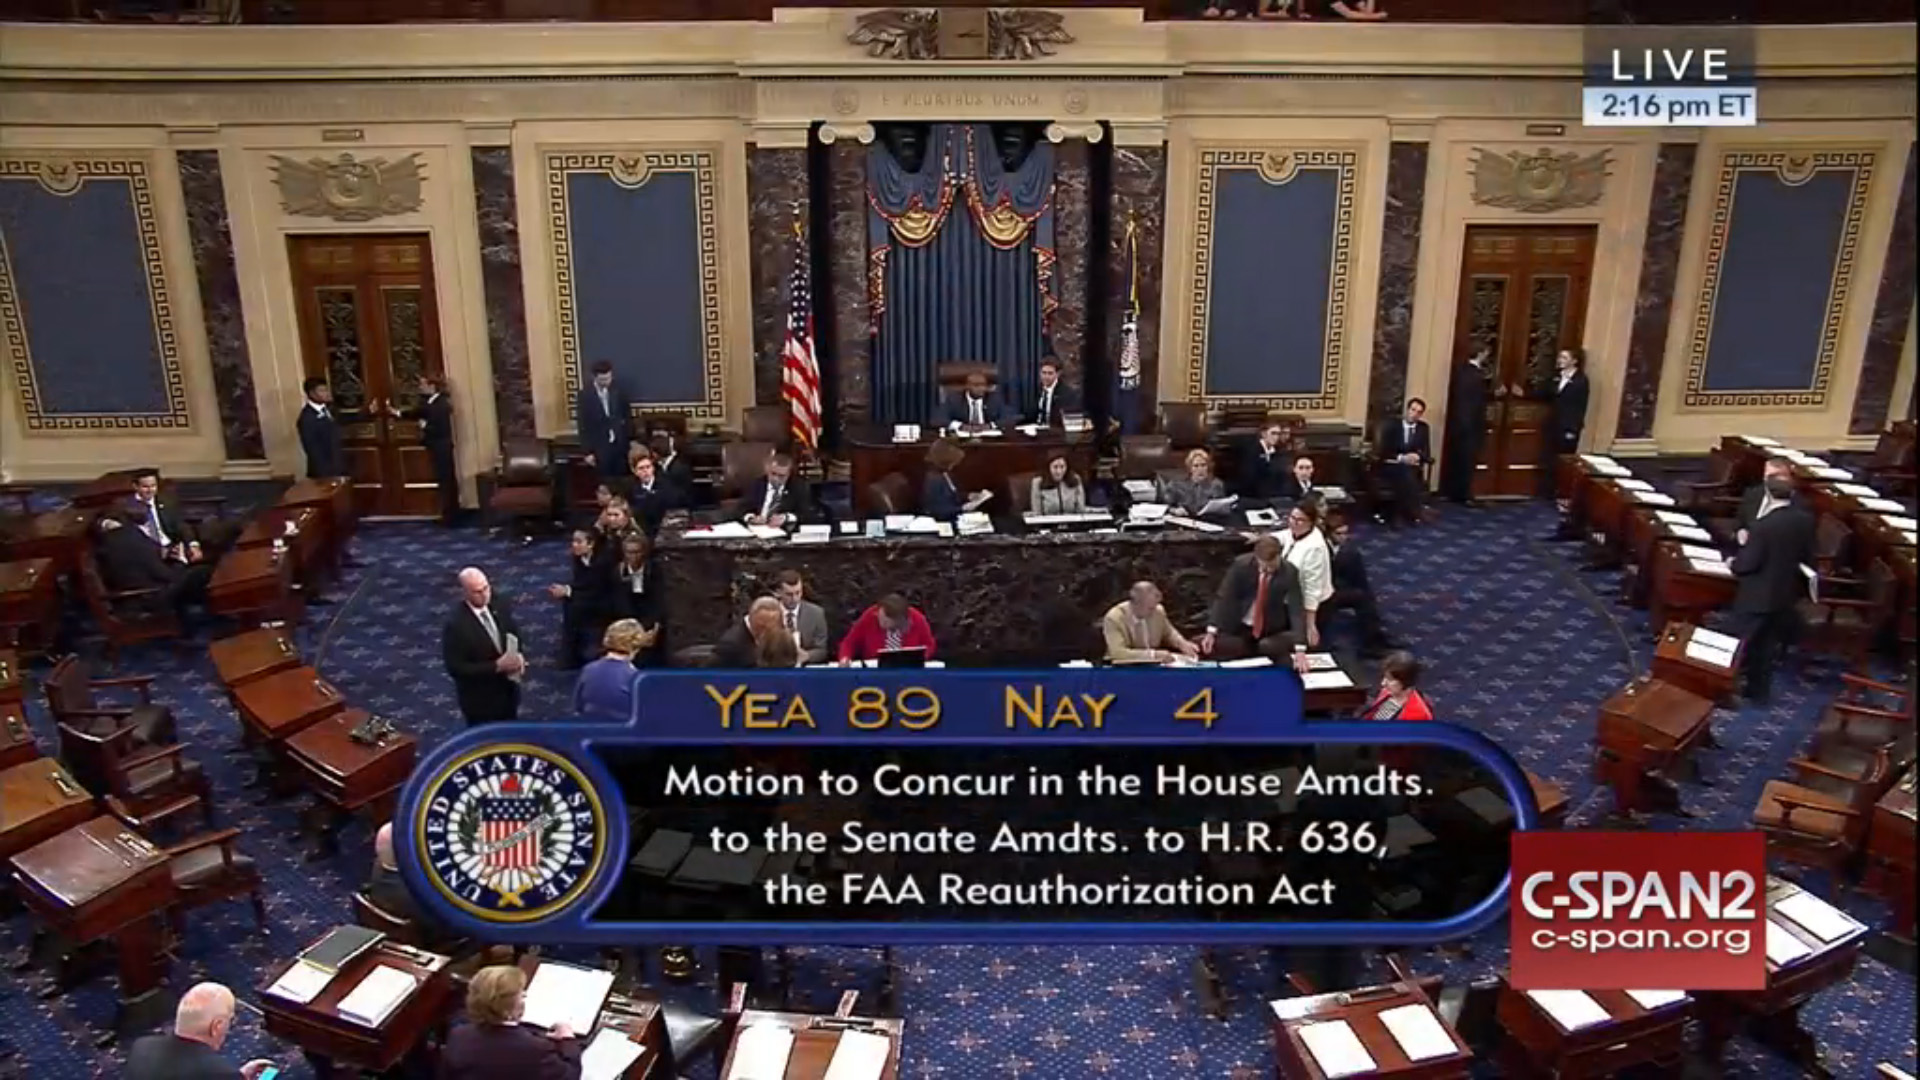 The U.S. Senate overwhelmingly approved legislation that includes medical reform on July 13. Image from C-Span.